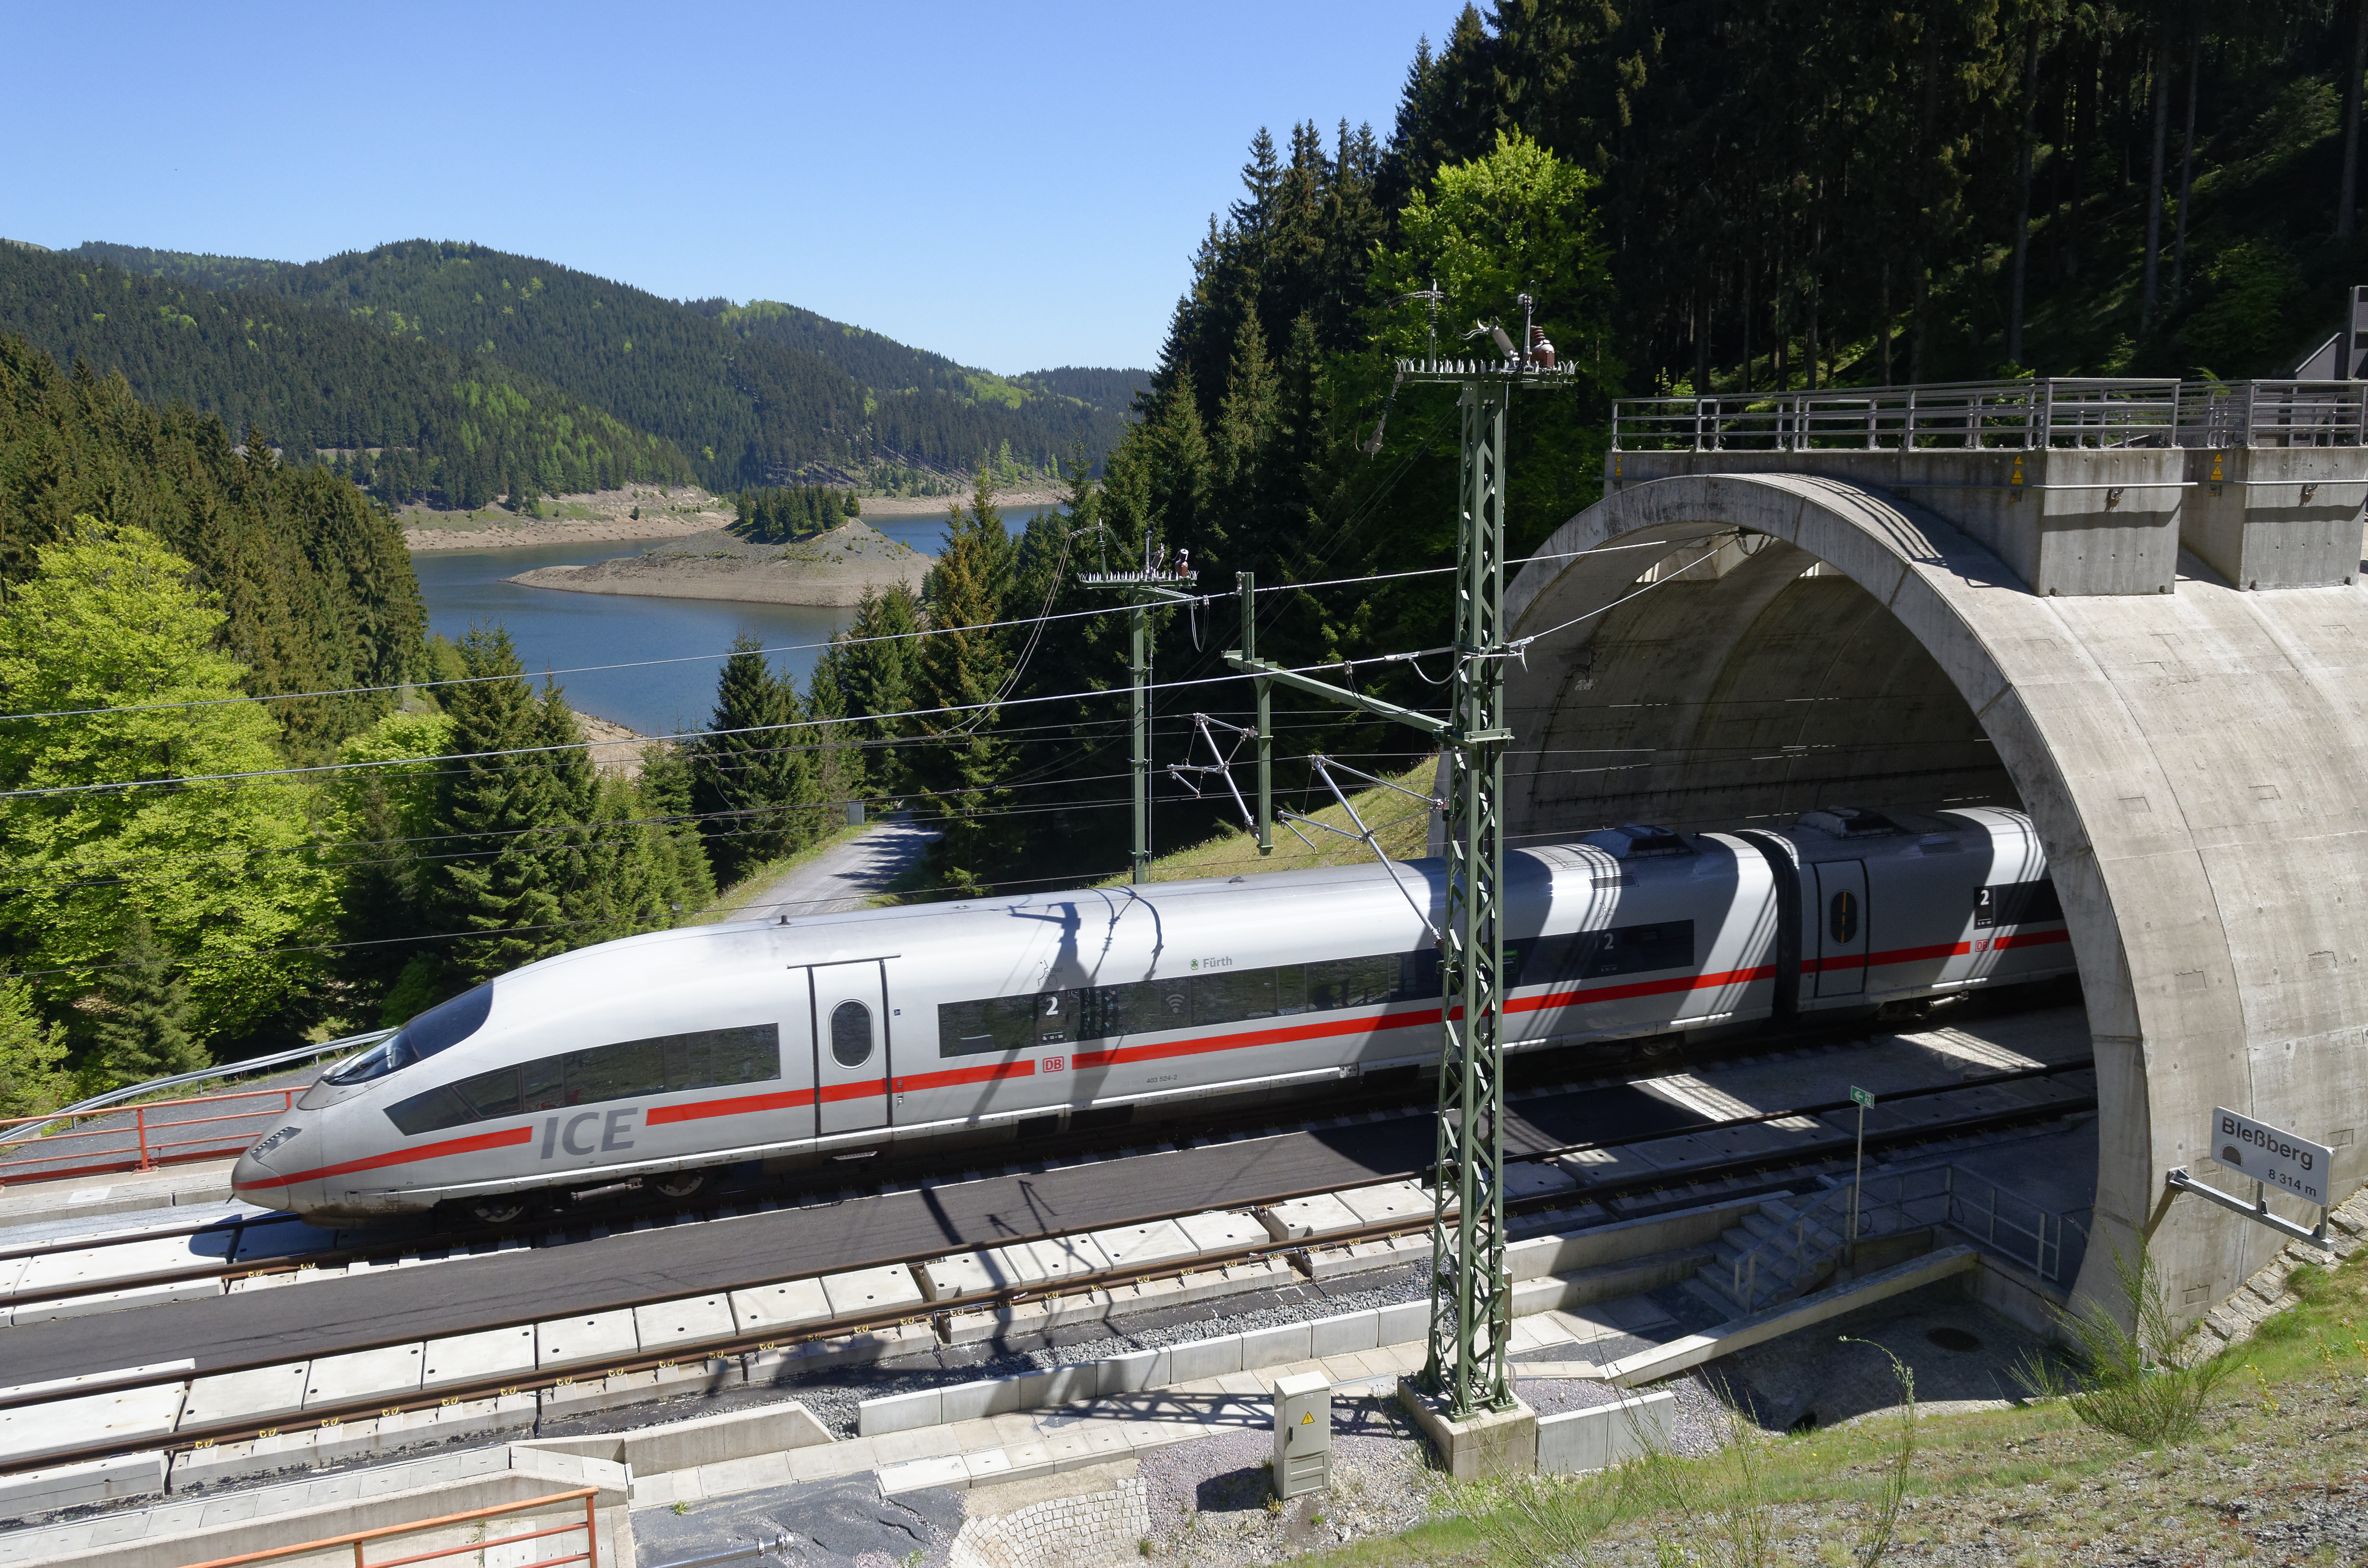 A DB ICE train on the VDE 8 German Unity Transport Project line